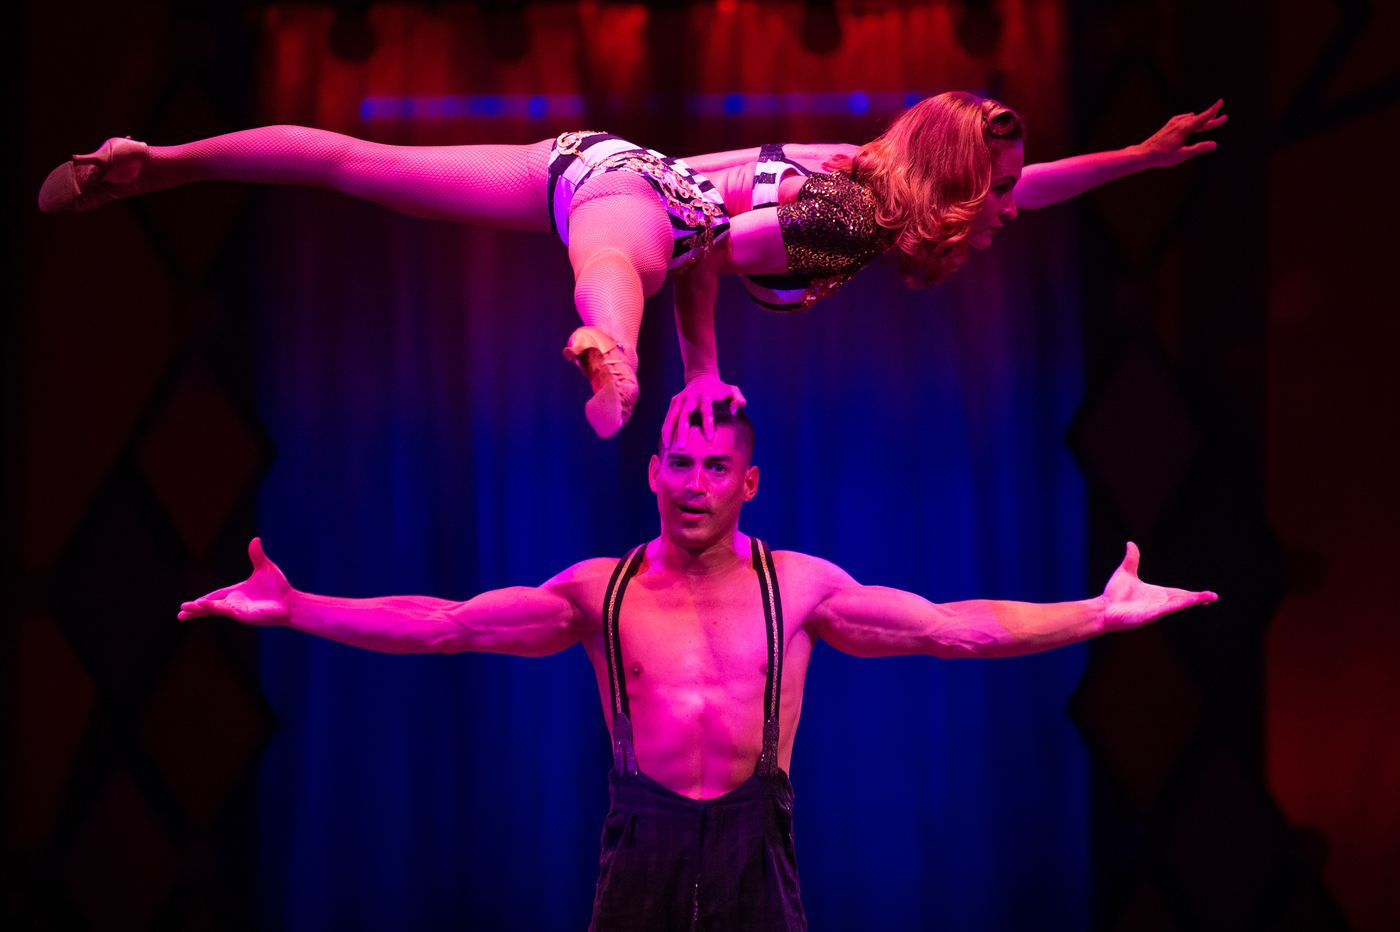 A high wire act: 3 years after declaring bankruptcy, Big Apple Circus seeks a new audience